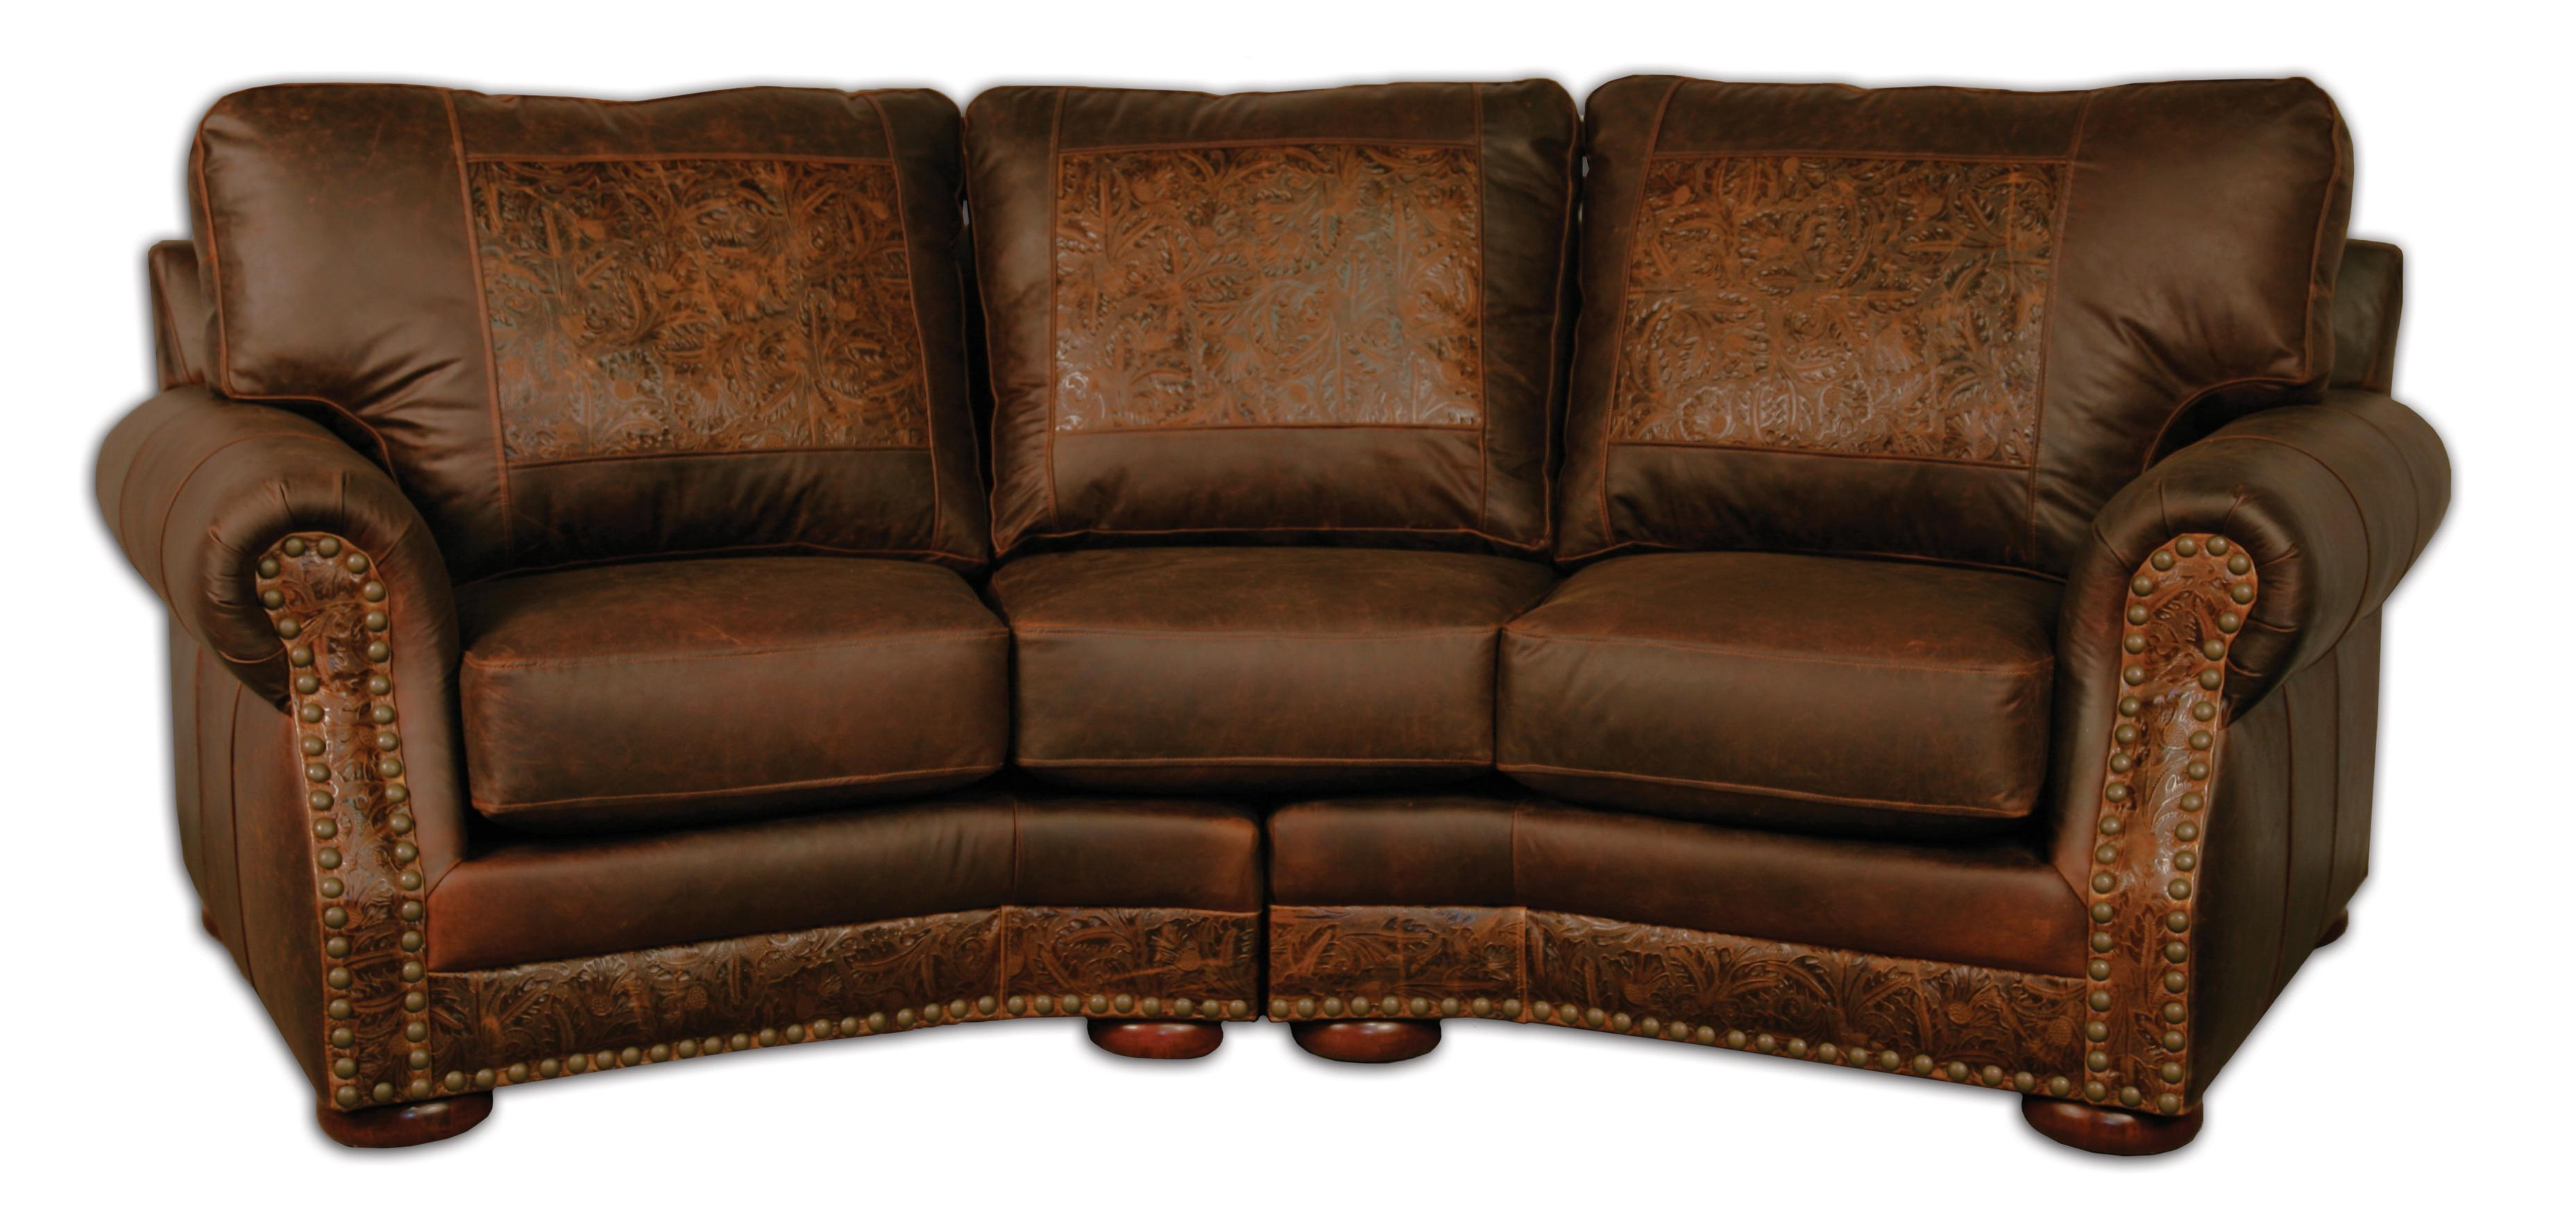 Cameron Sofa Chairs In Newest Cameron Ranch Conversation Sofa Dejavu Holster & Cosmo Tooled Leather (View 8 of 20)